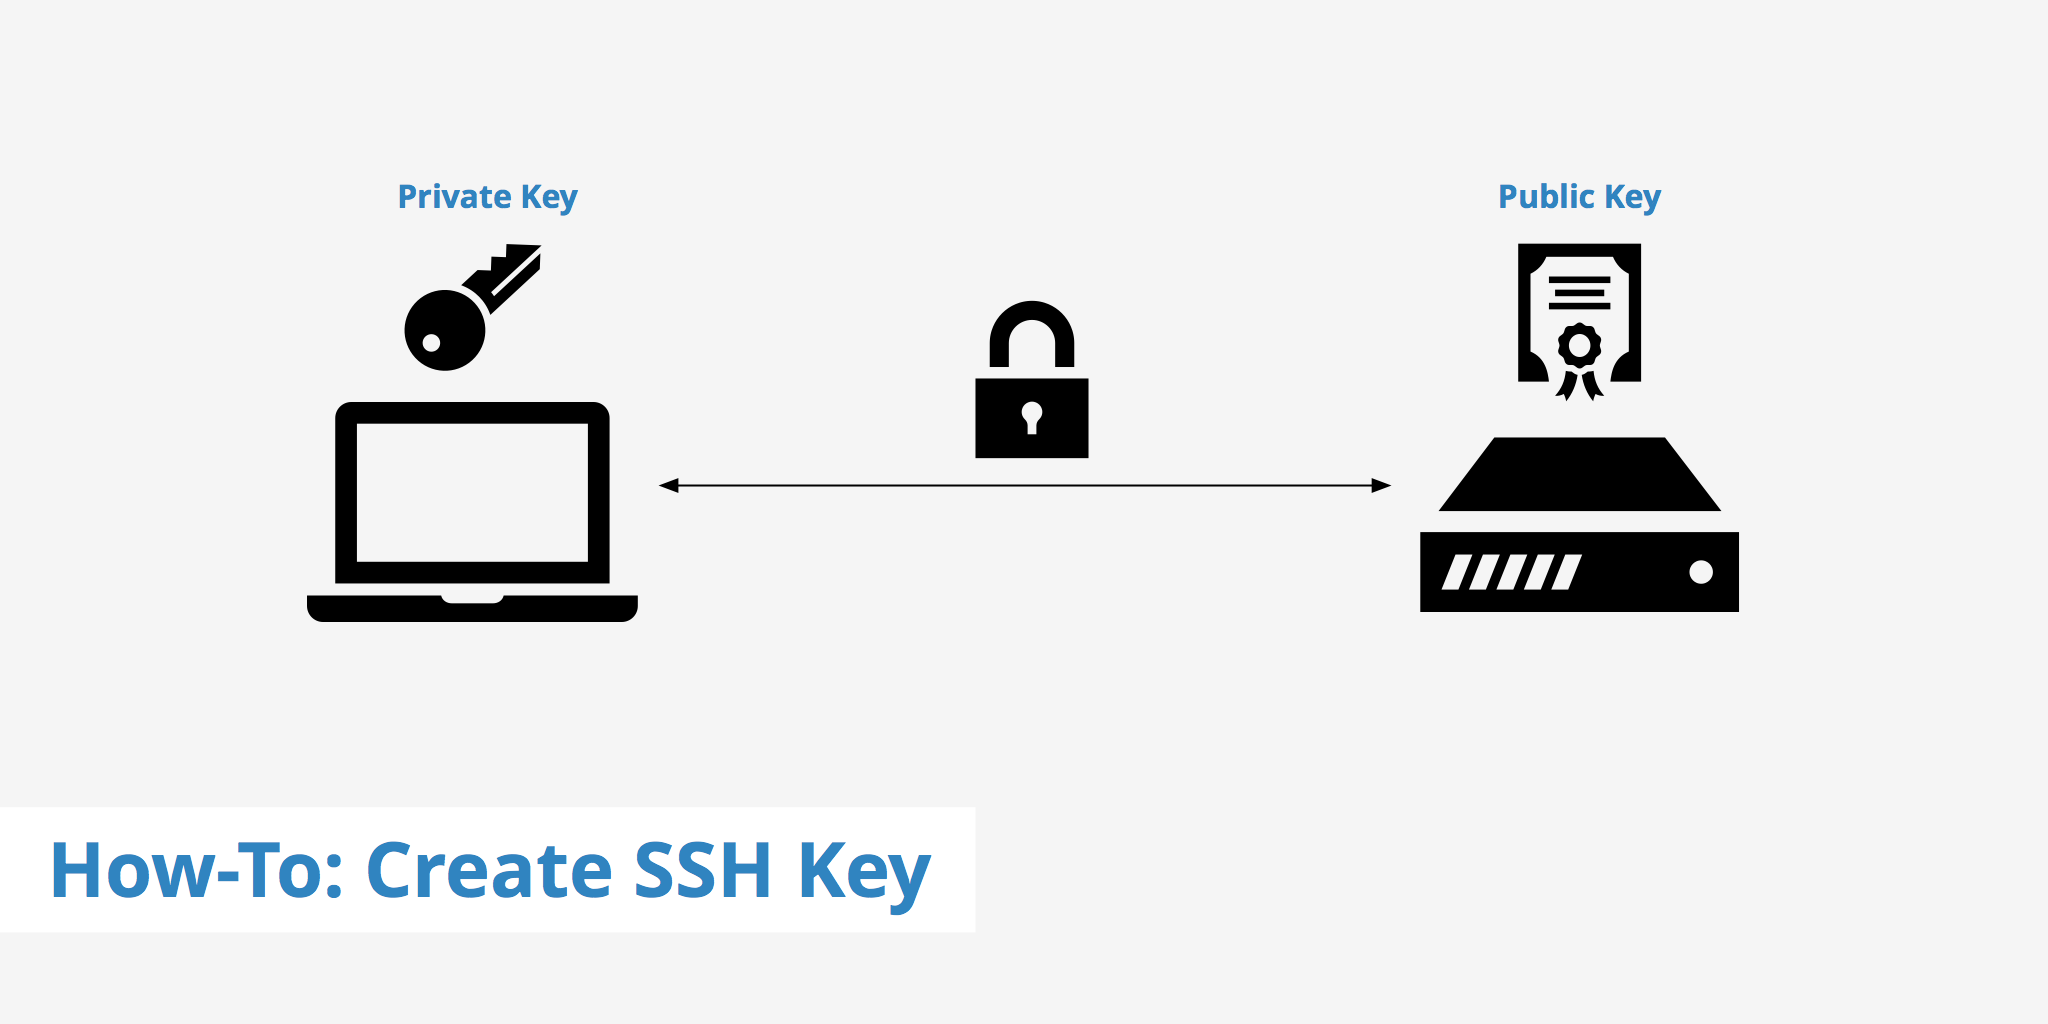 keygen to generate ssh keys